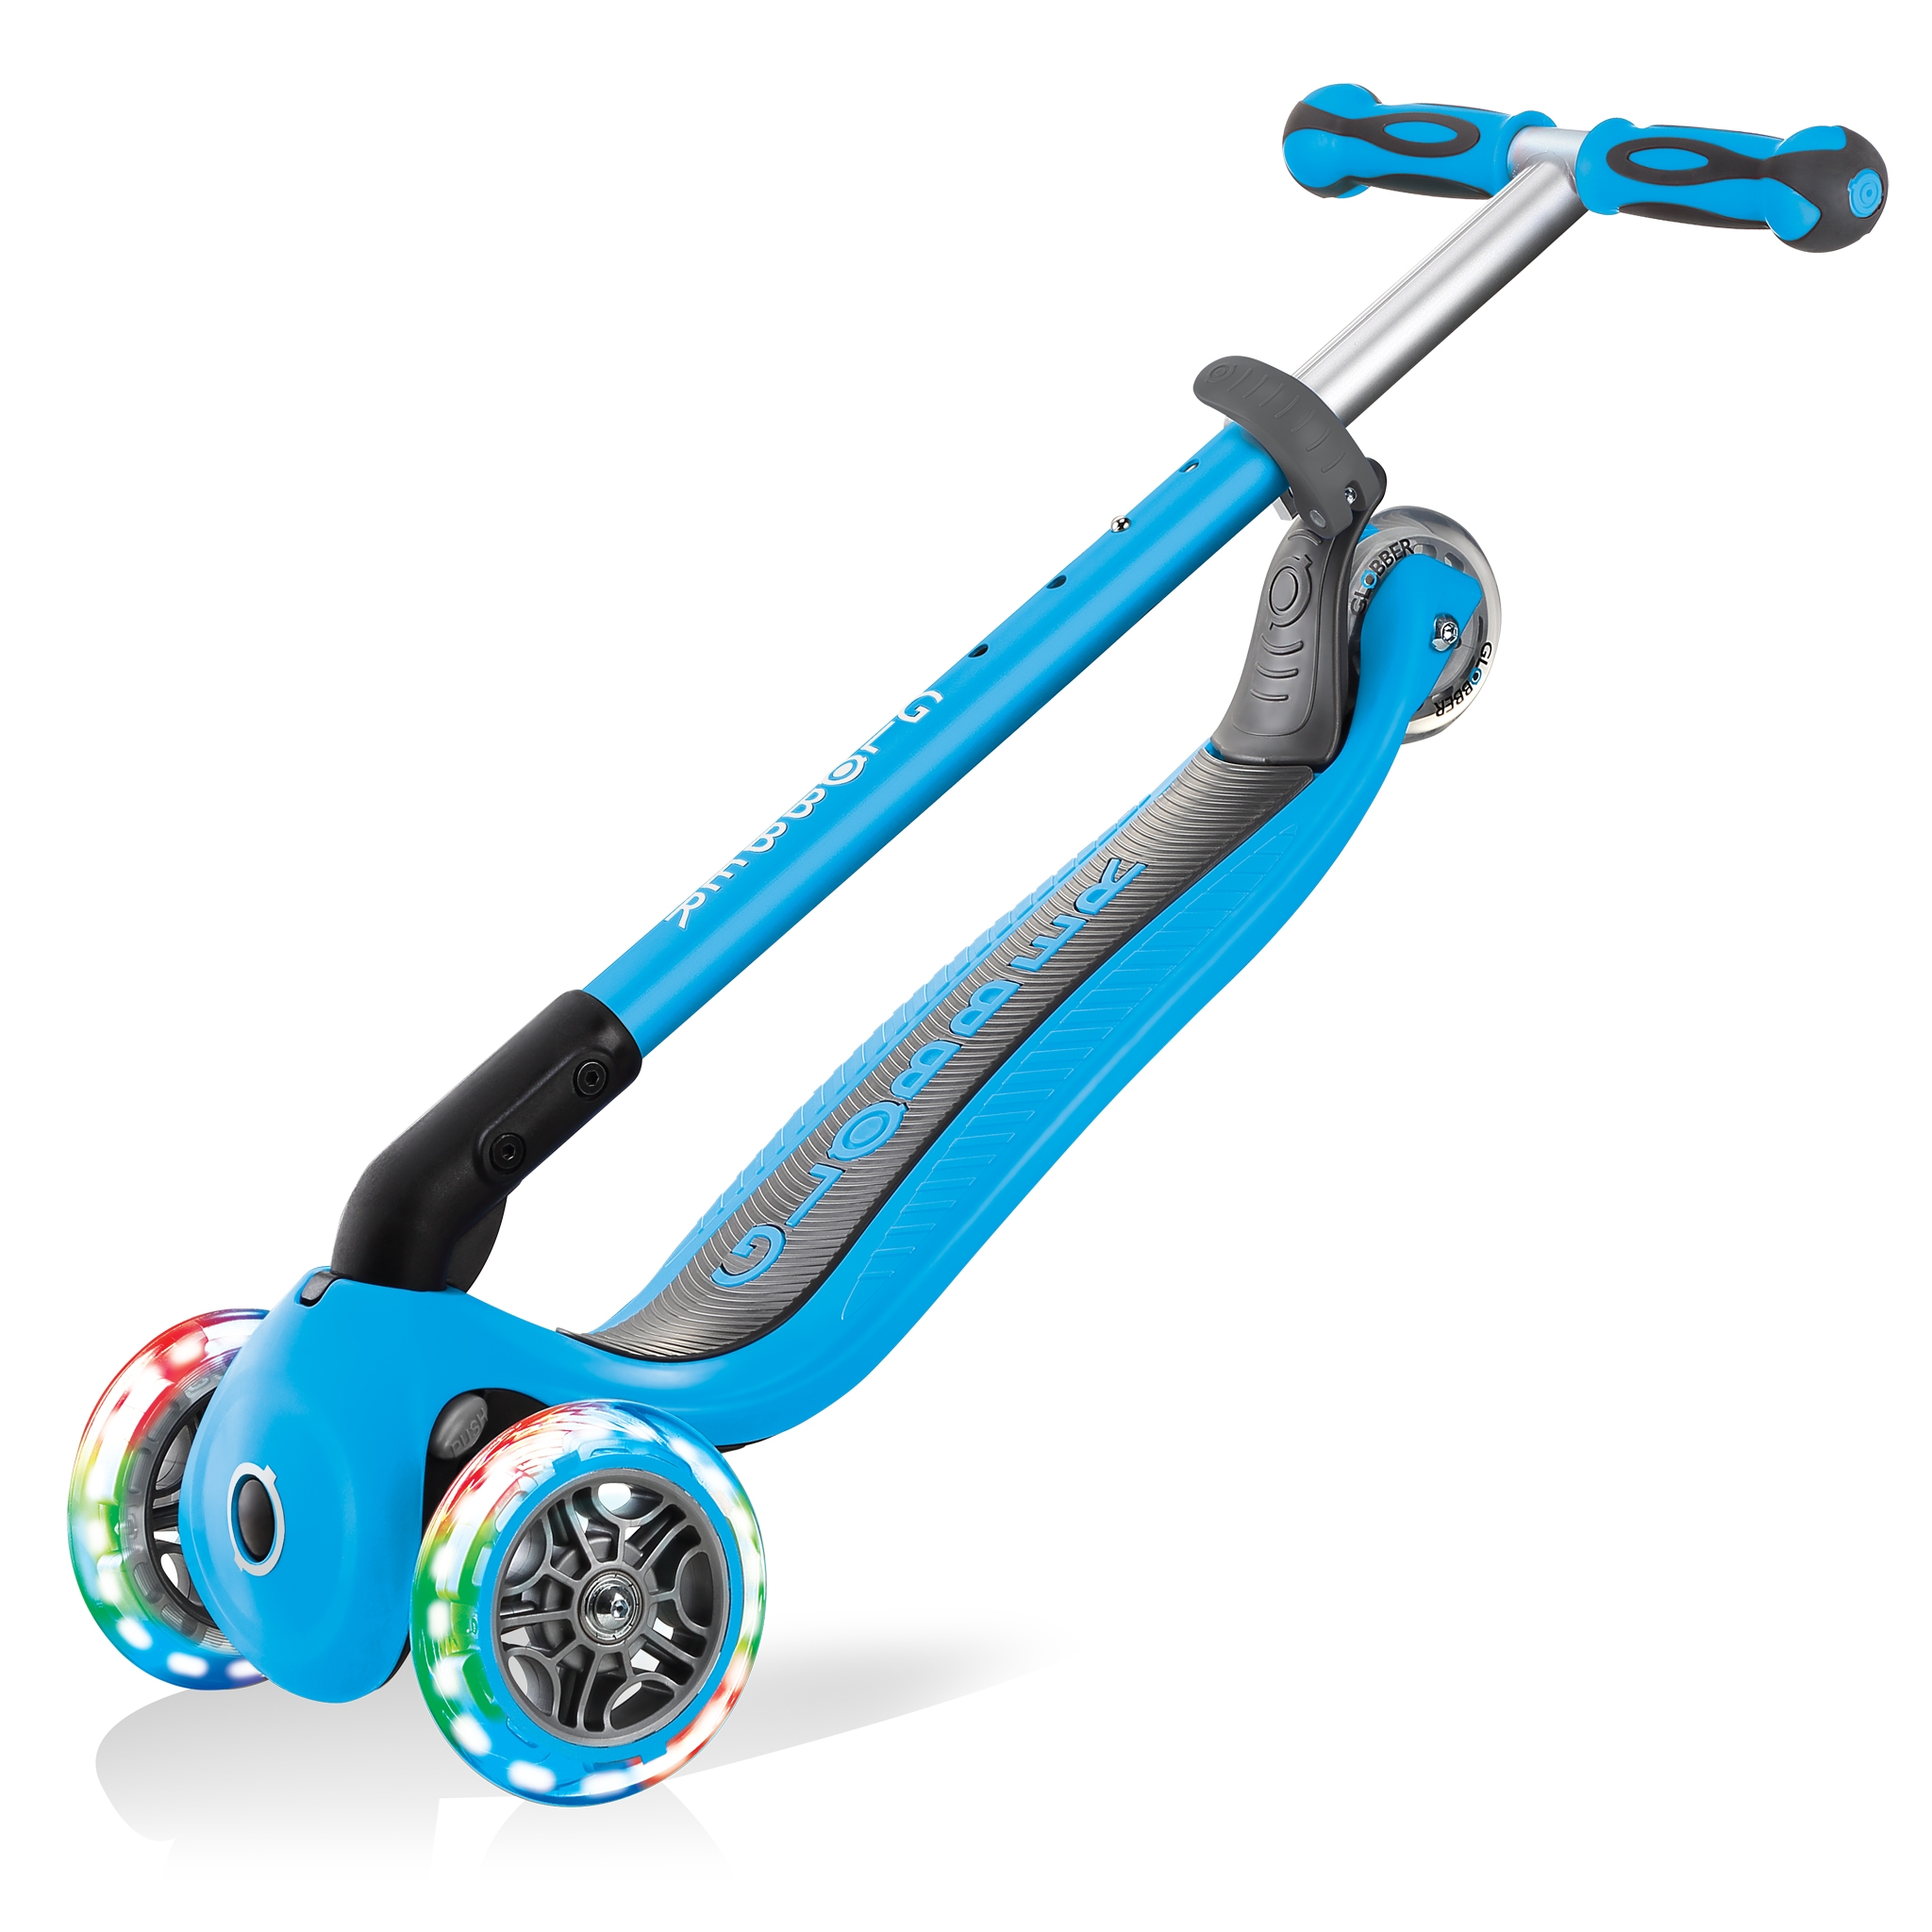 GO-UP-DELUXE-LIGHTS-ride-on-walking-bike-scooter-with-light-up-wheels-trolley-mode-compatible-sky-blue 5